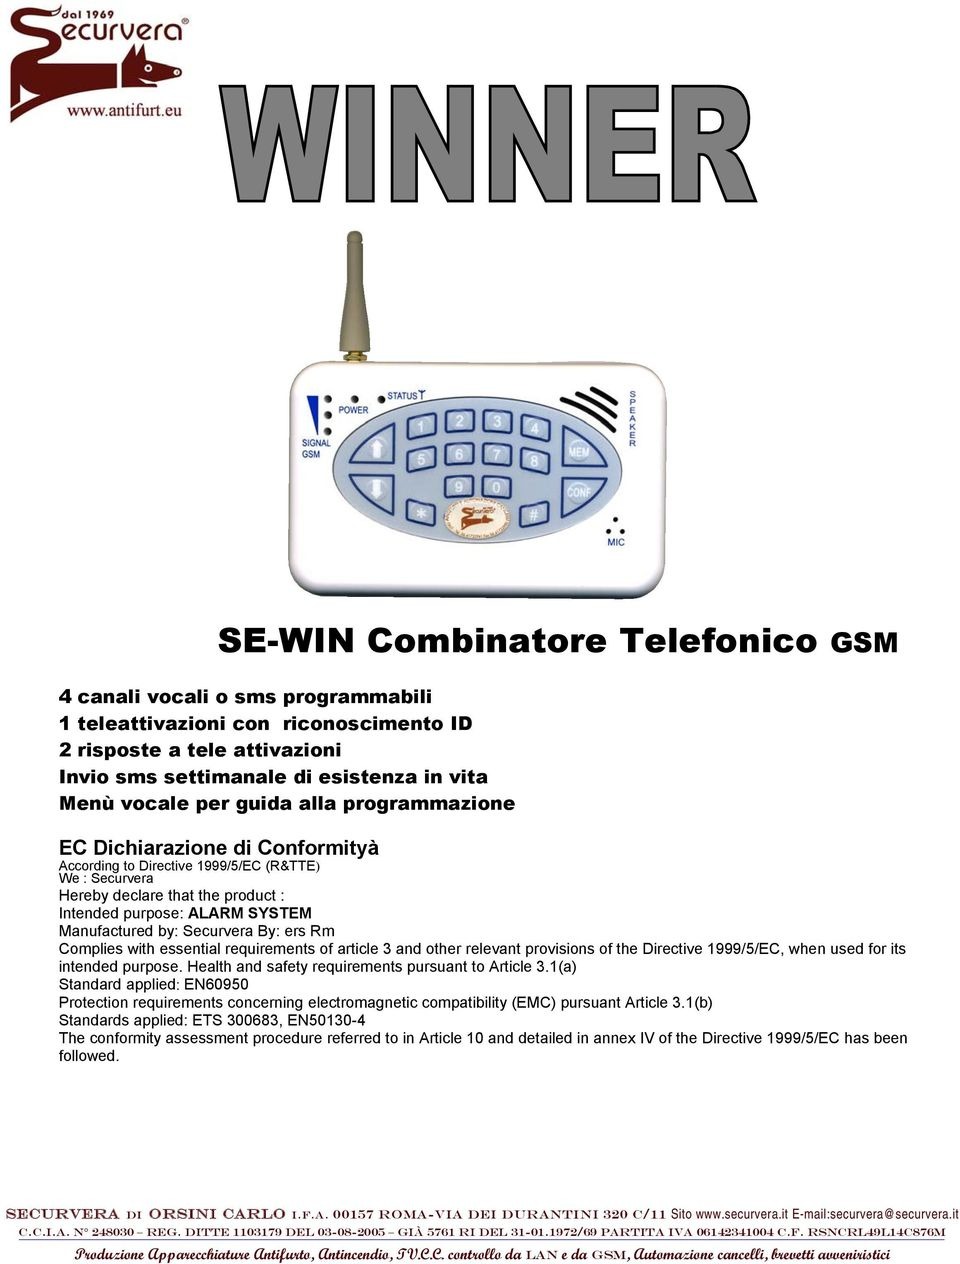 Securvera By: ers Rm Complies with essential requirements of article 3 and other relevant provisions of the Directive 1999/5/EC, when used for its intended purpose.